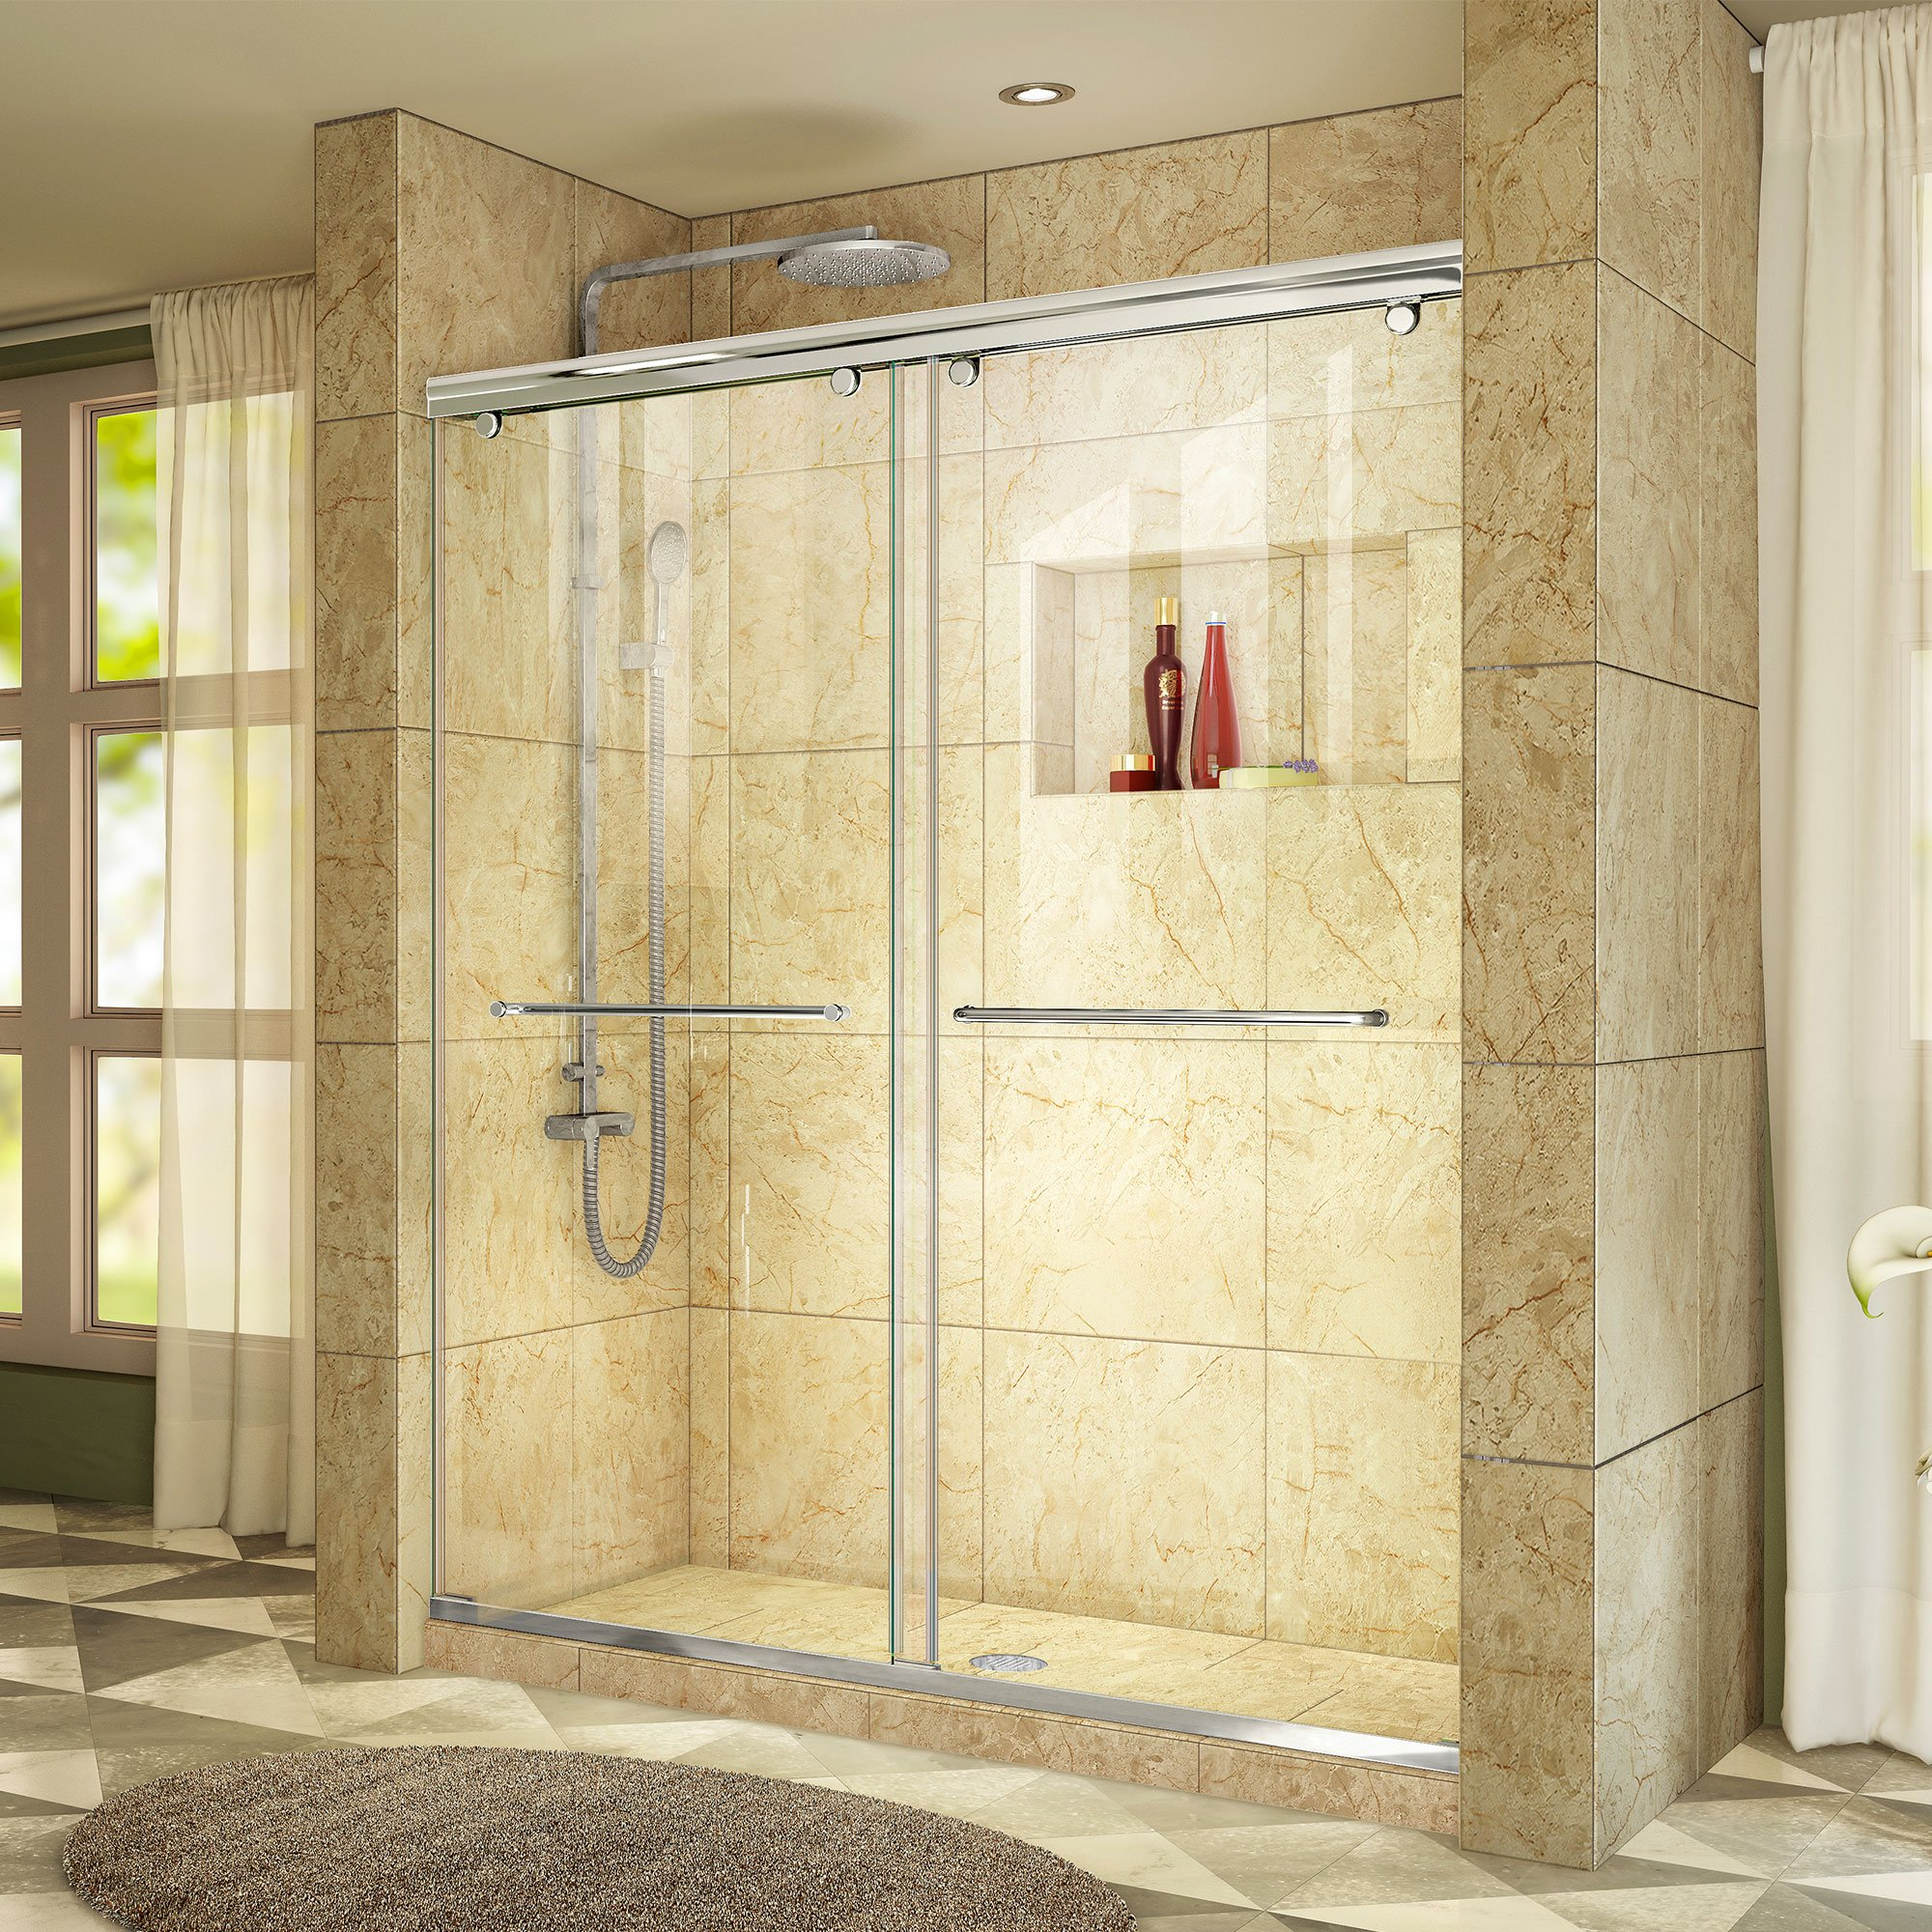 DreamLine Charisma 56-60 in. W x 76 in. H Frameless Bypass Sliding Shower Door in Chrome, SHDR-1360760-01 by DreamLine